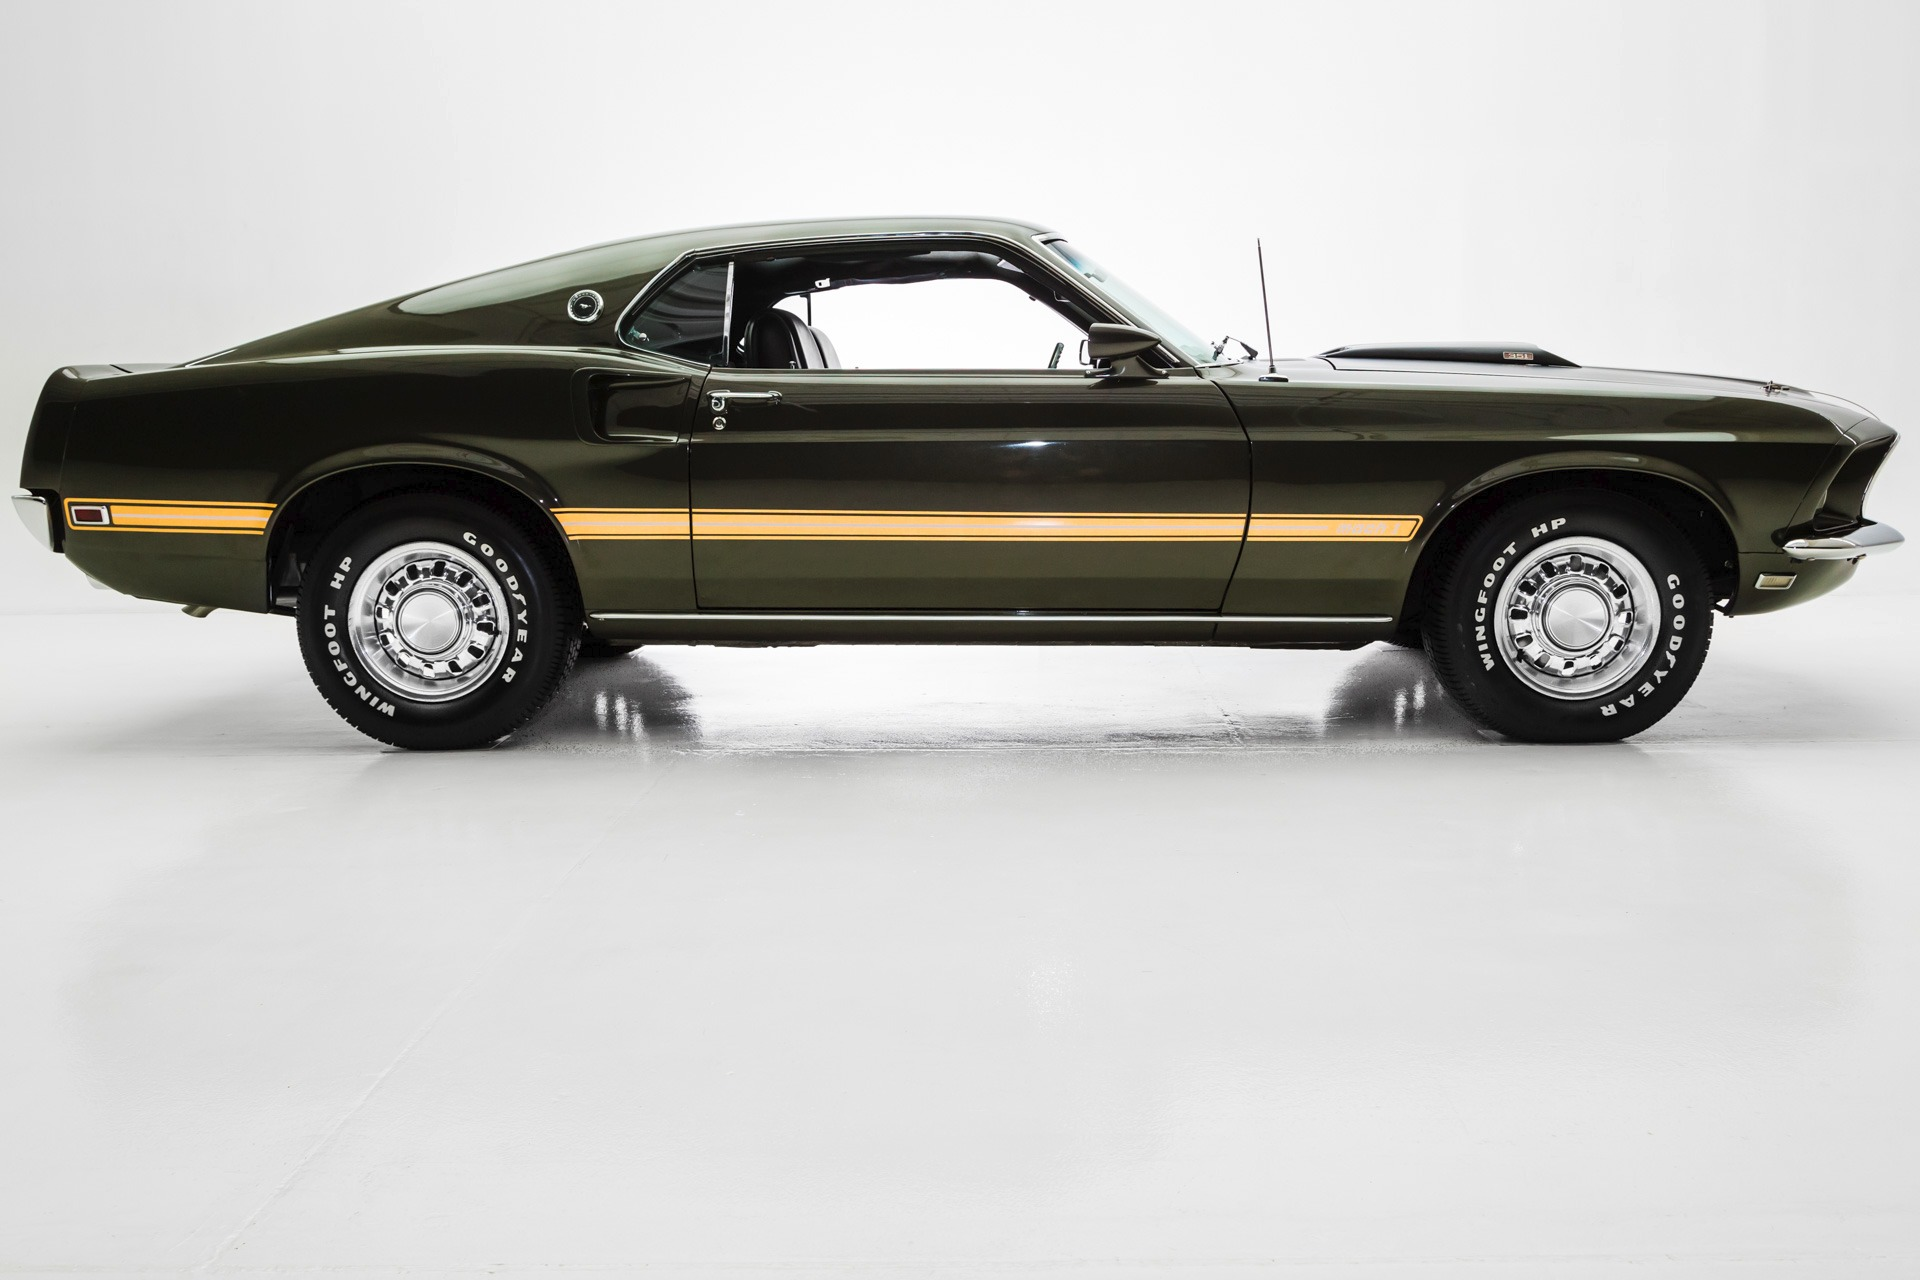 Used 1969 ford mustang mach 1 dark jade green 351 a c st